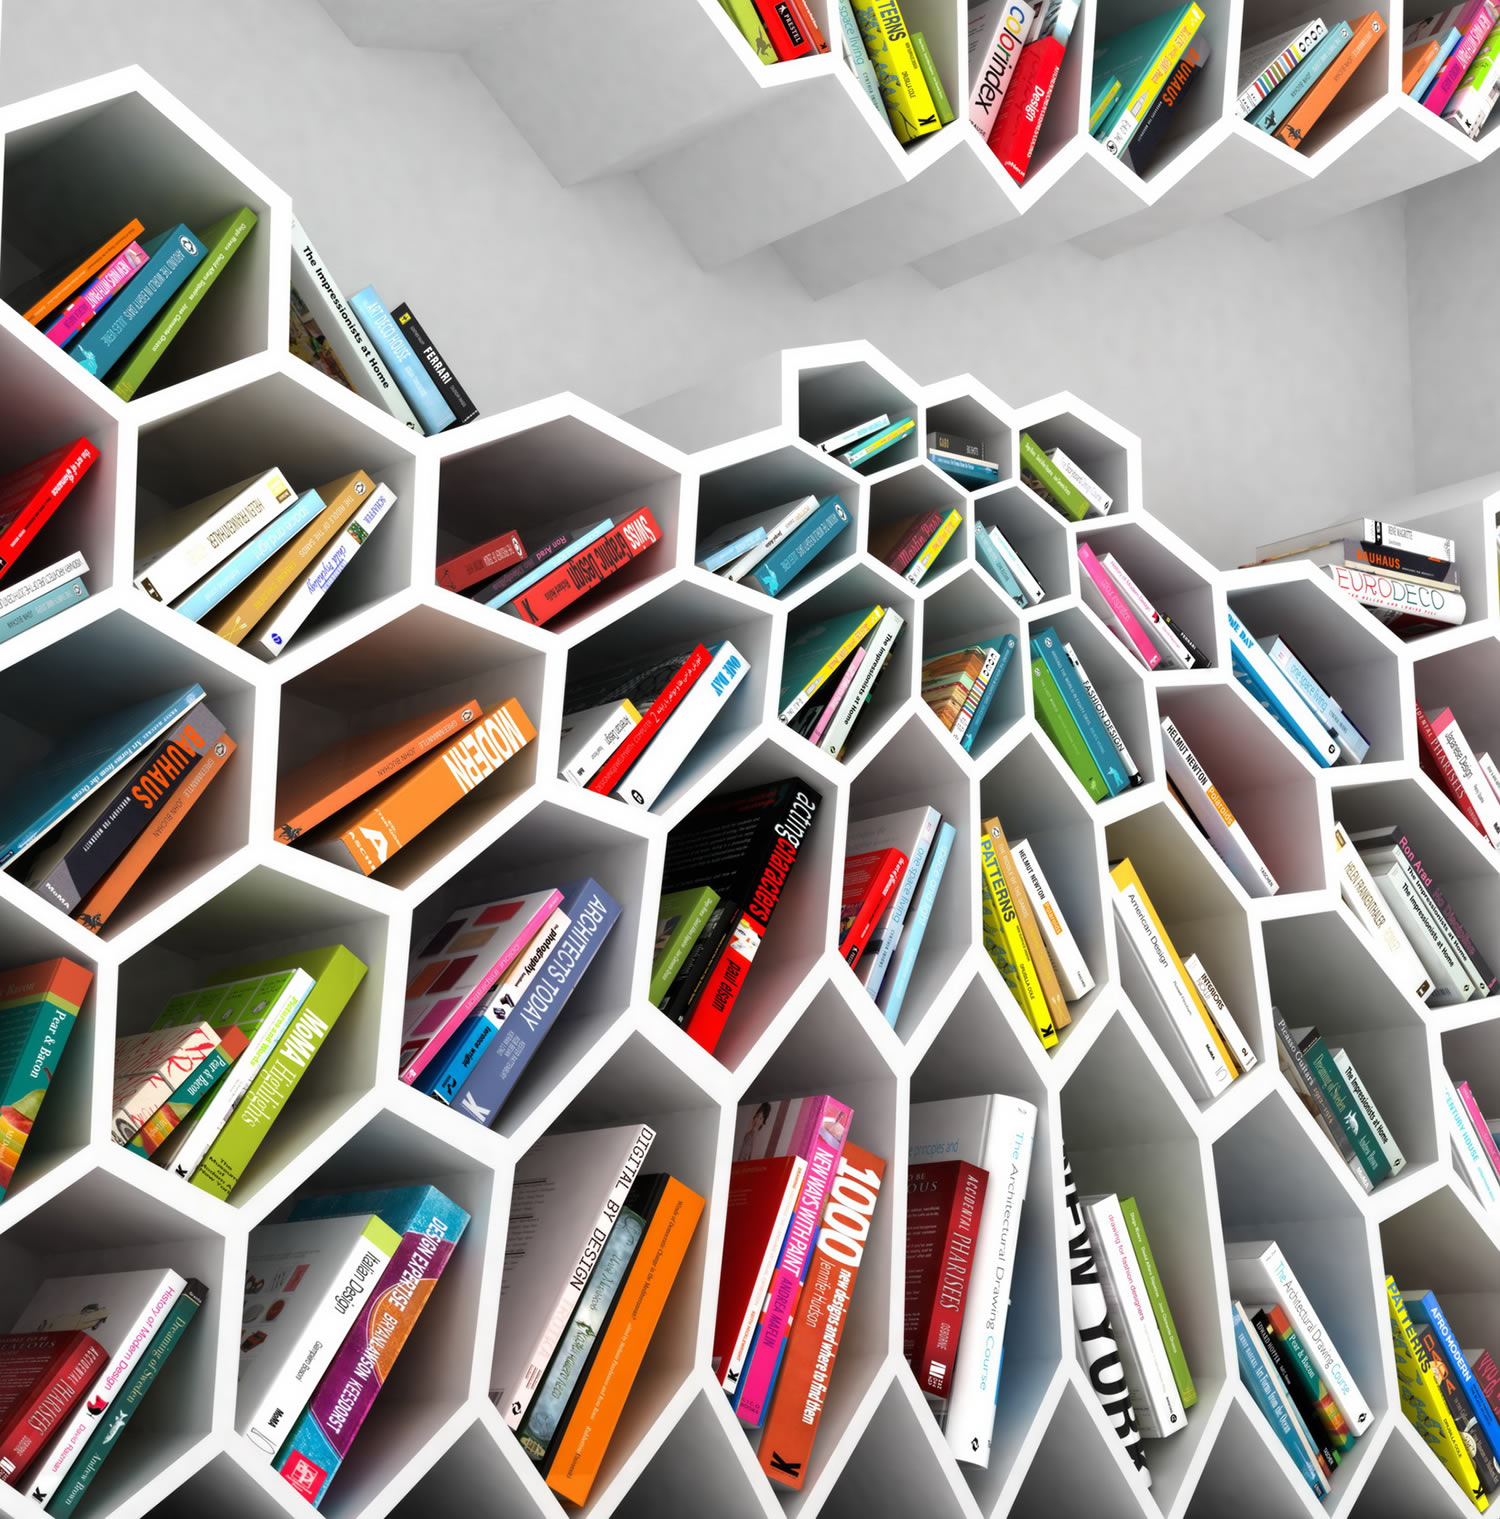 honeycomb bookshelf